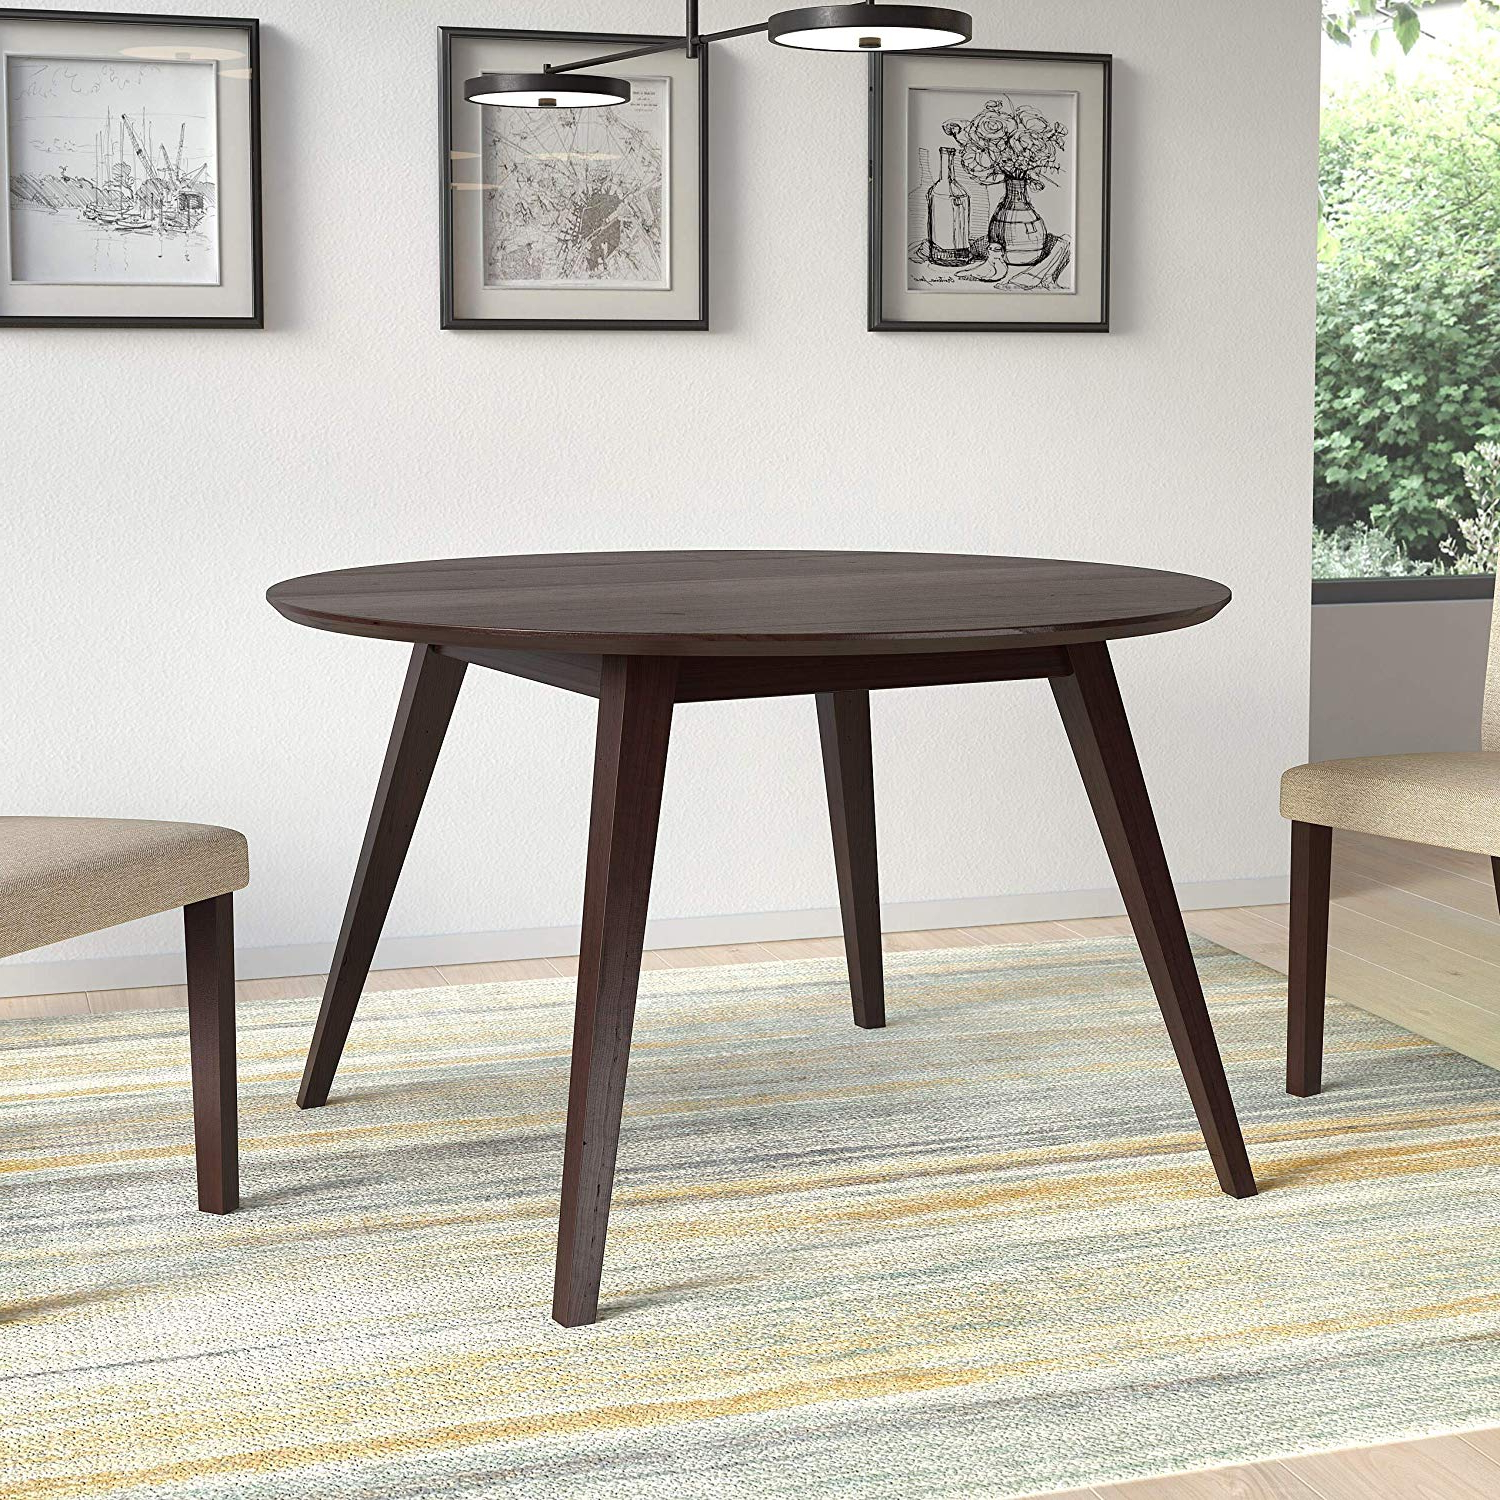 Widely Used Amazon – Corliving Atwood Round Dining Table In Pertaining To Atwood Transitional Rectangular Dining Tables (Gallery 12 of 30)